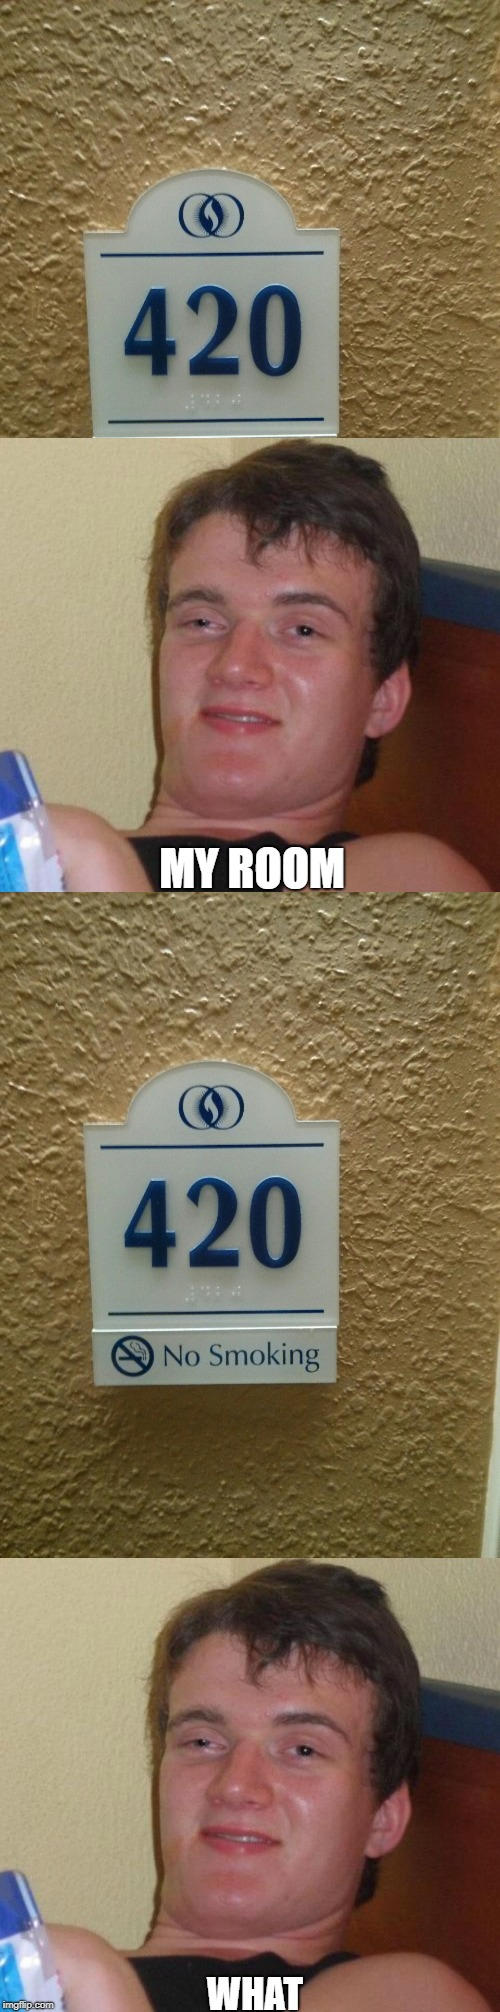 the irony | WHAT MY ROOM | image tagged in ssby,memes,funny,irony | made w/ Imgflip meme maker